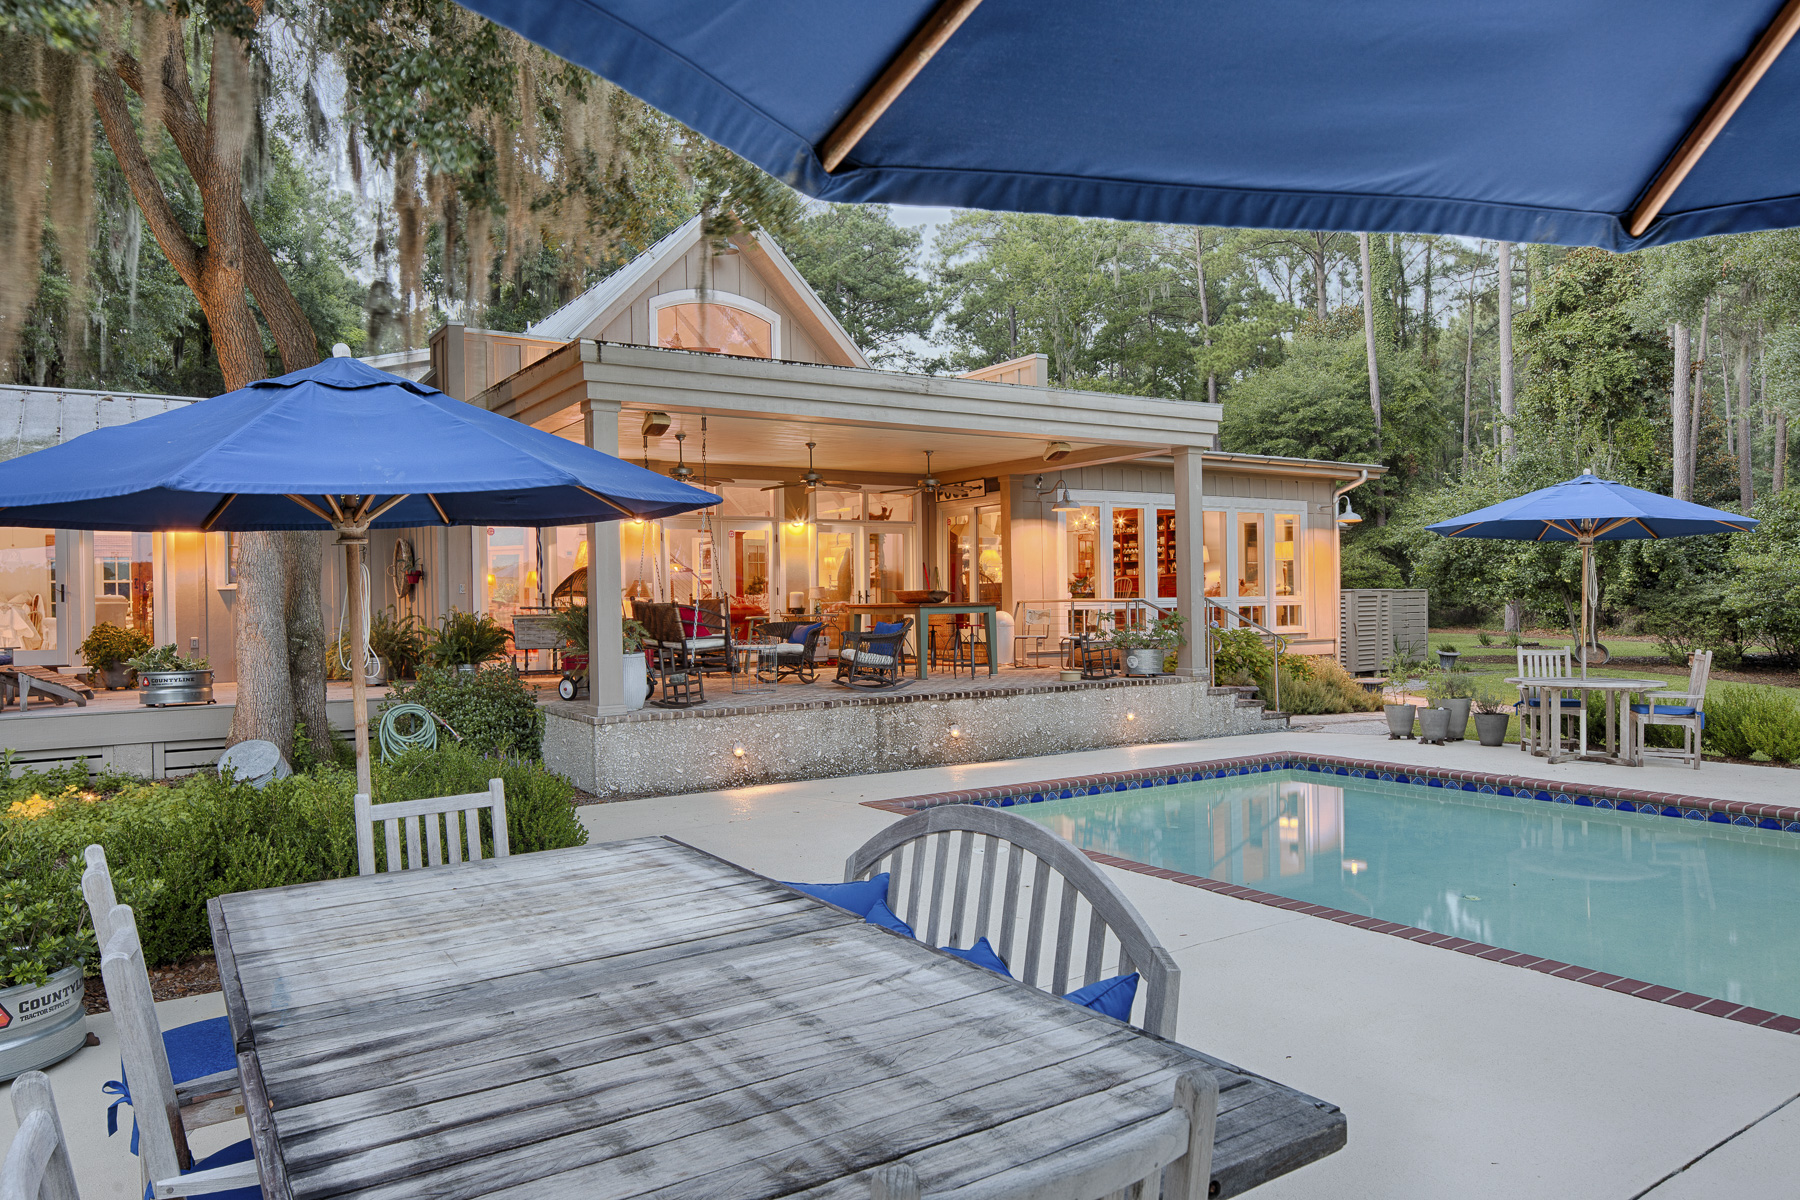 Single Family Home for Sale at 77 Pine View Drive Bluffton, South Carolina 29910 United States